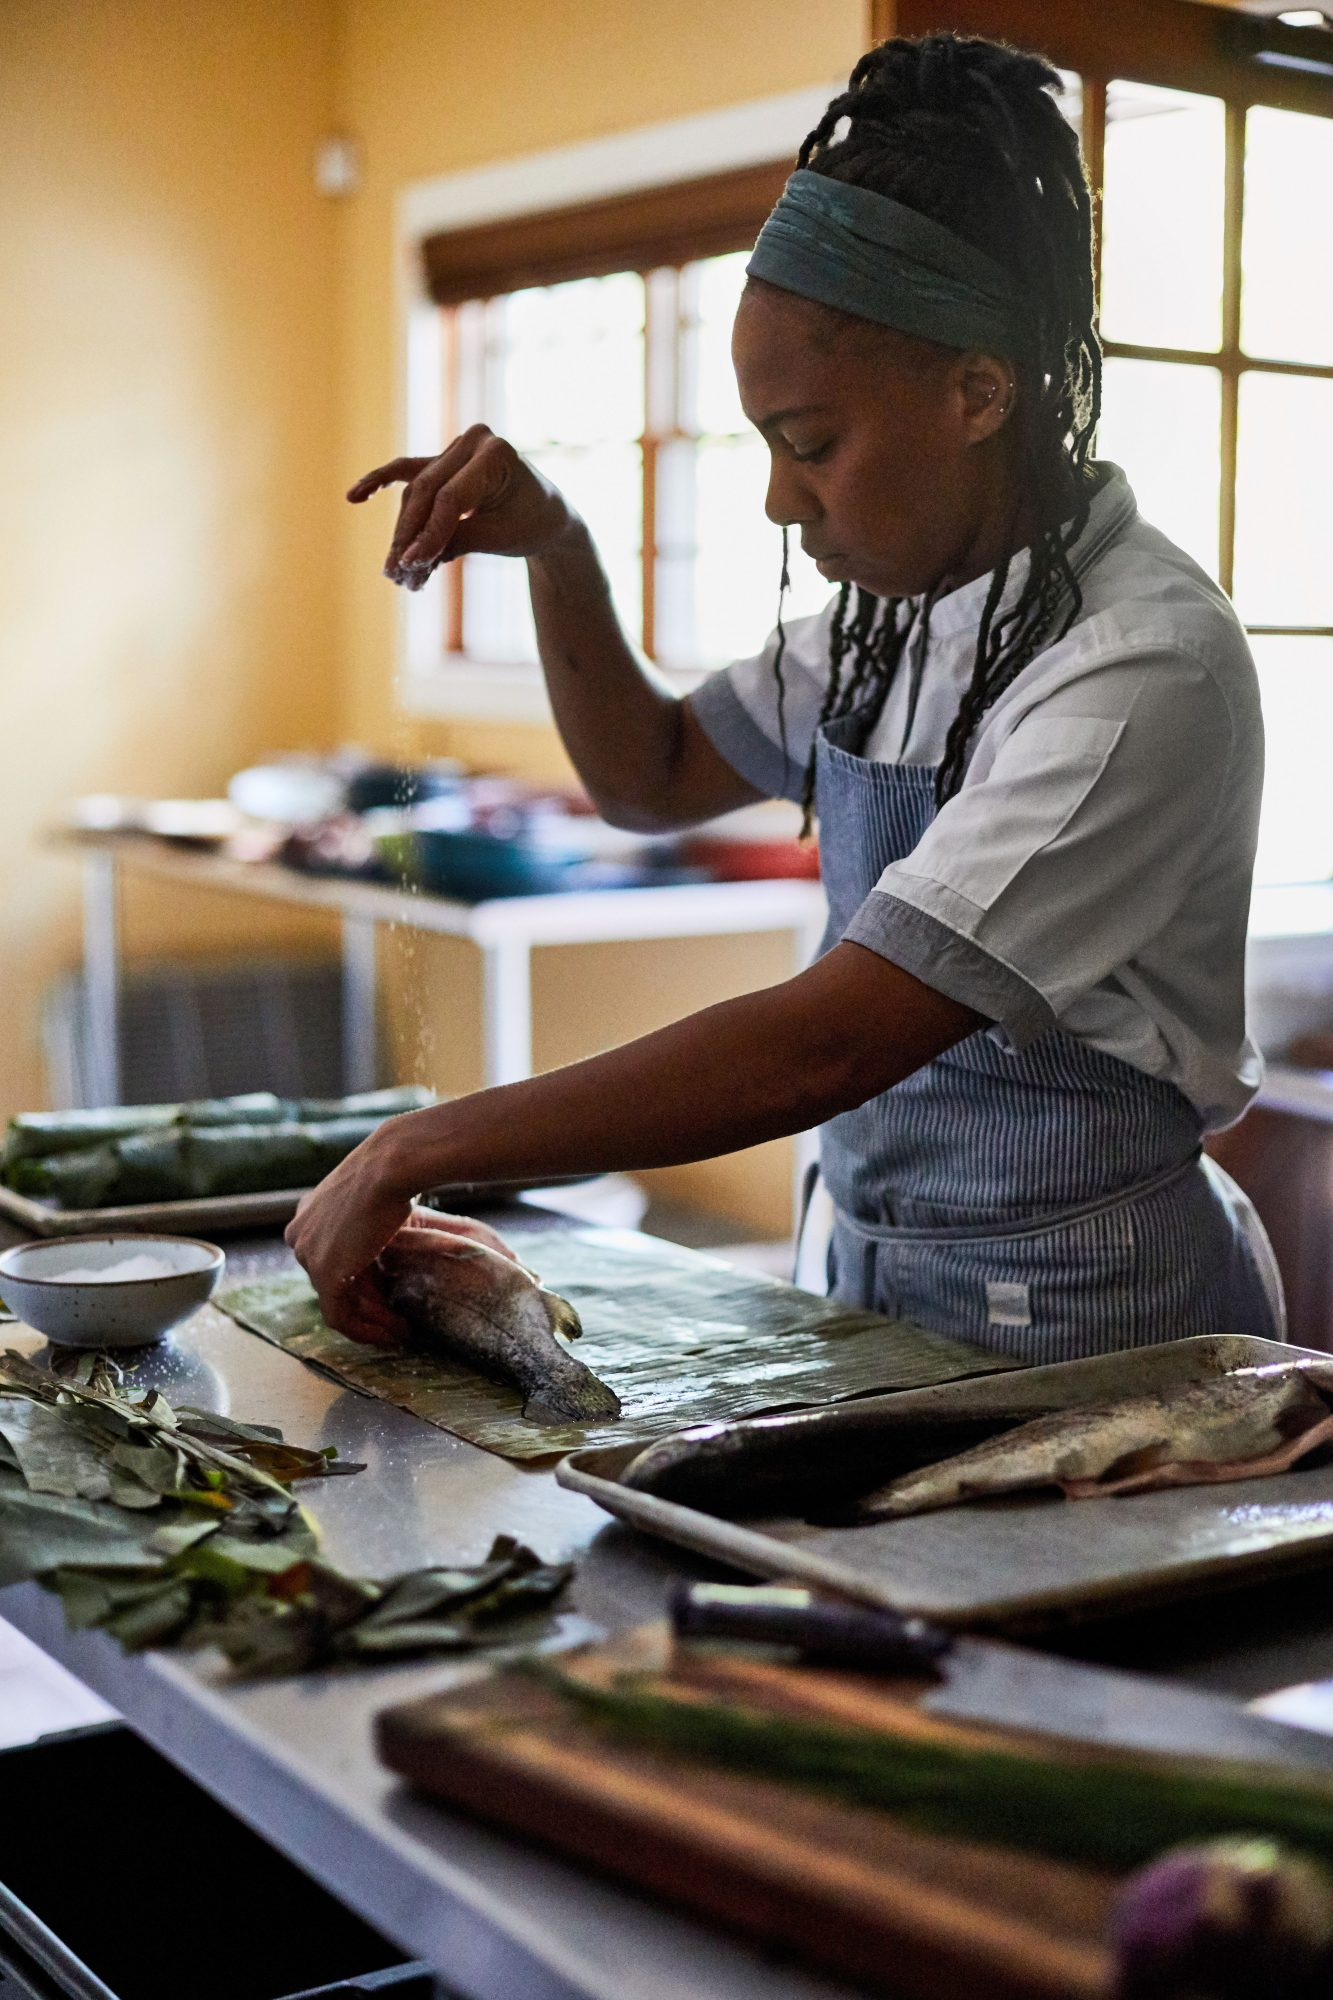 Chef Ashleigh Shanti seasoning trout before wrapping and cooking it in plantain leaves